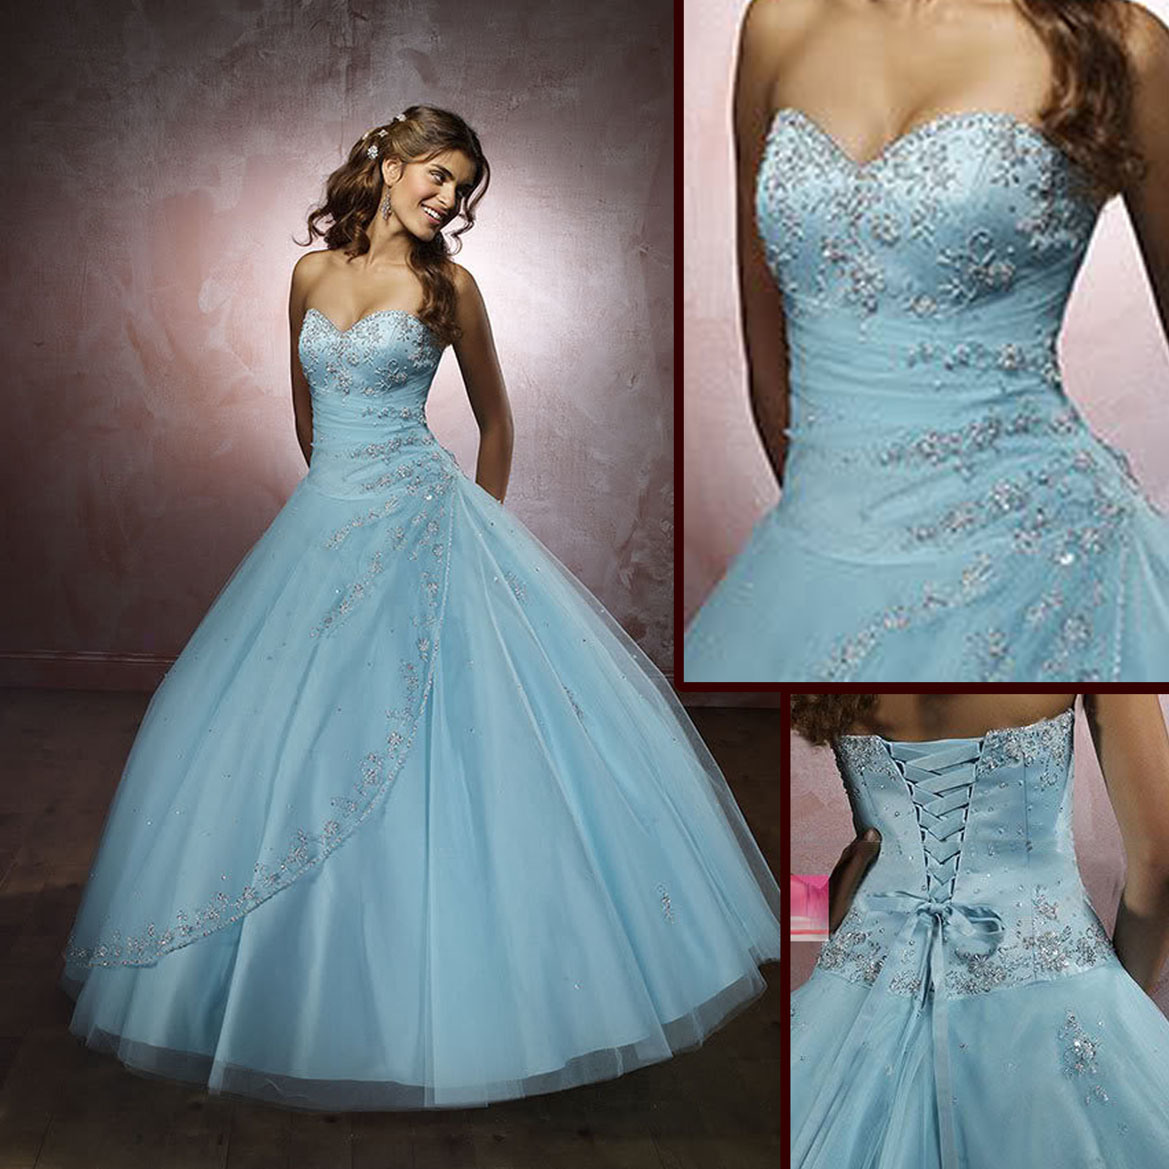 Wedding Dresses Prom Dresses 96